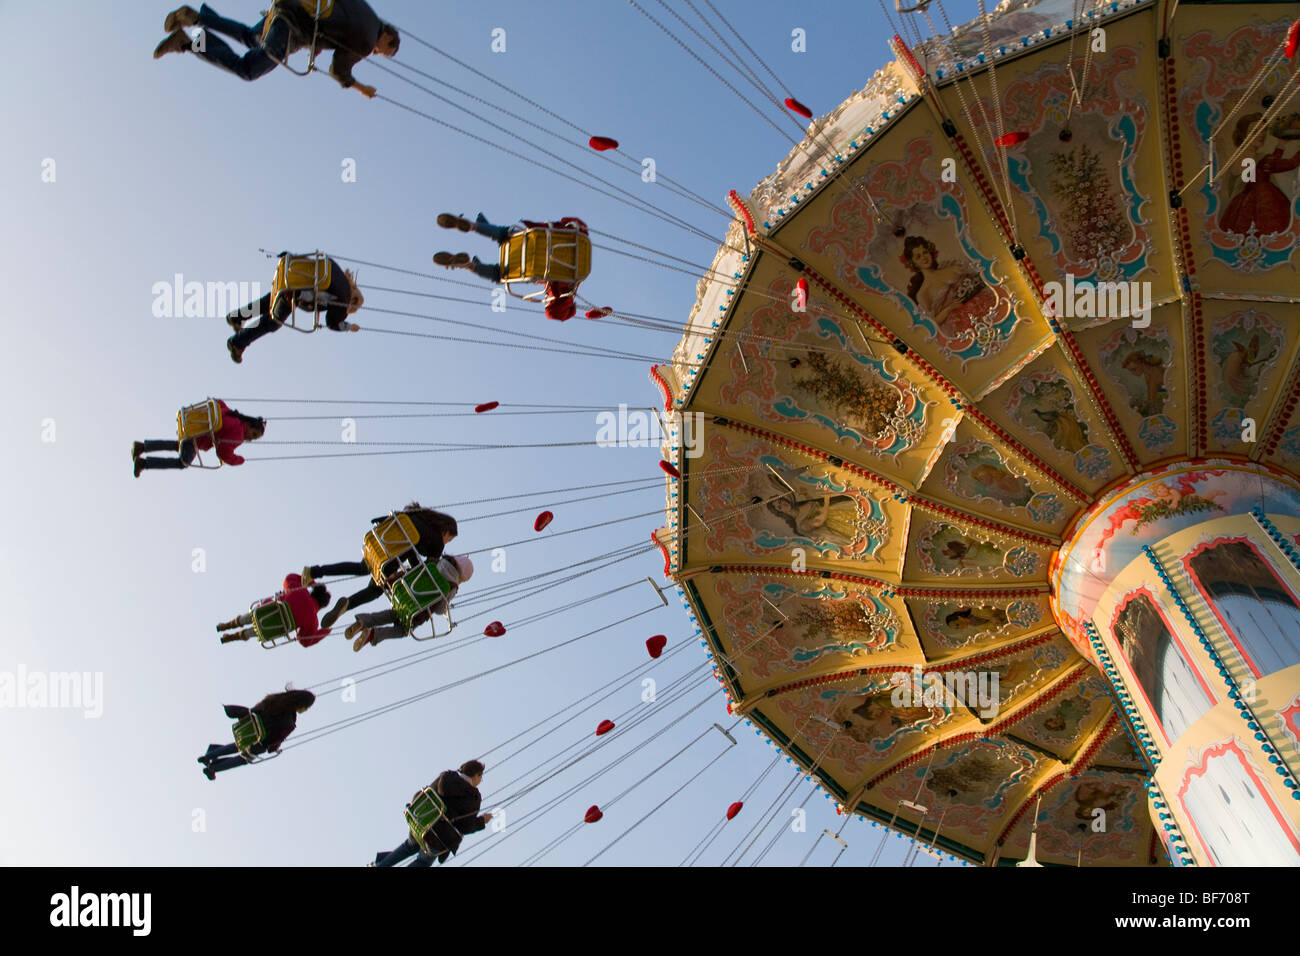 Chairoplane at the fairground of Cannstatter Volksfest in Stuttgart, Baden-Wurttemberg, Germany - Stock Image